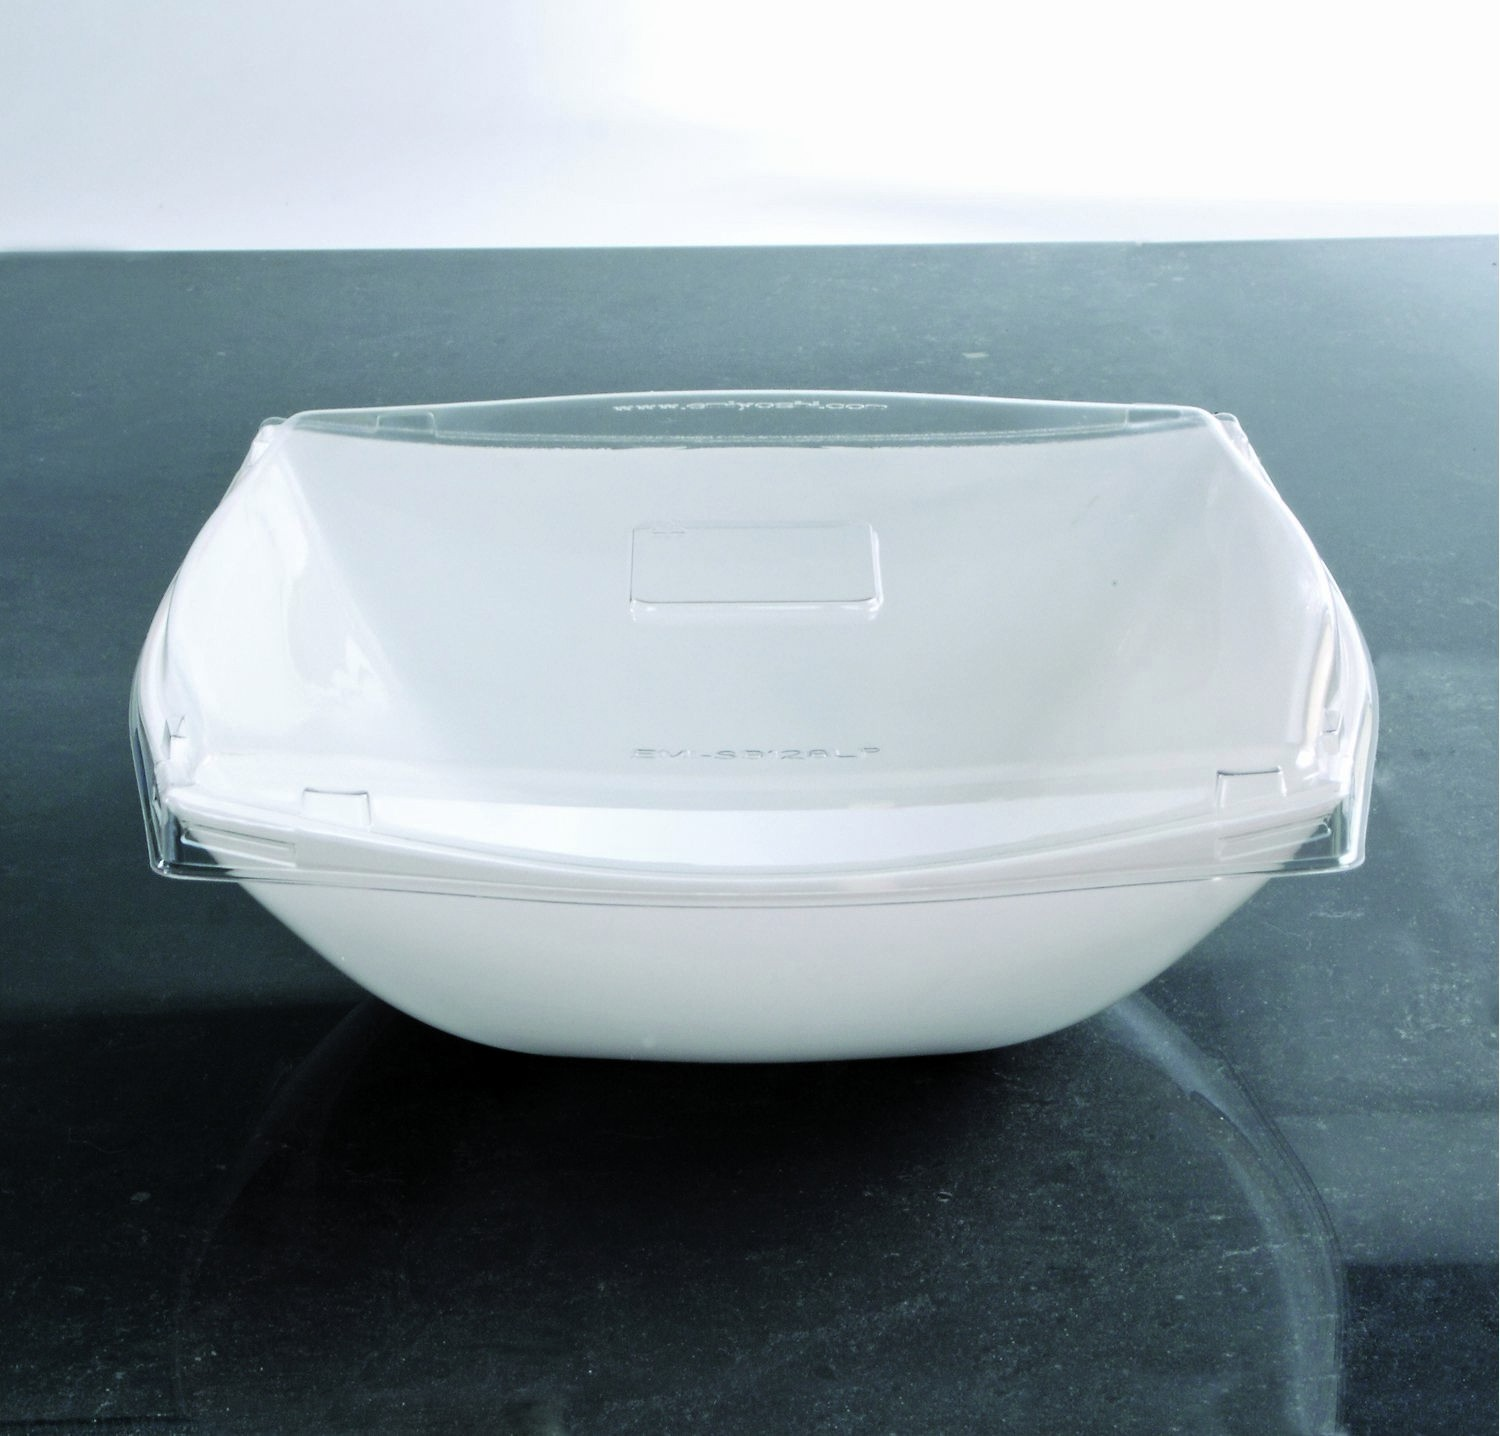 Emi Yoshi EMI-SB128LP PET Square Serving Bowl Lid 128 oz. - 4 doz